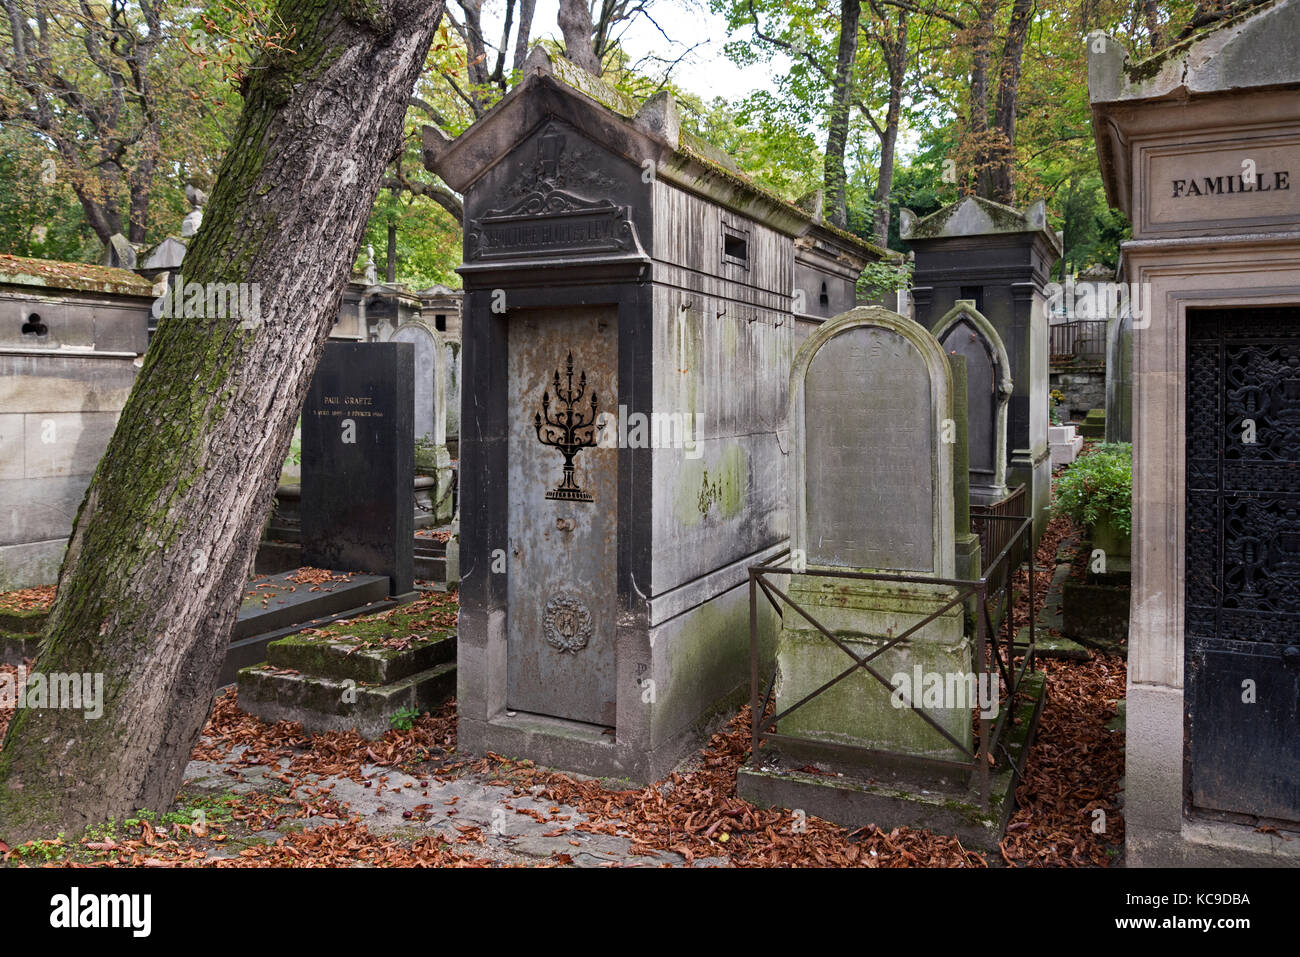 The tomb of Blum and Levy in Pere Lachaise cemetery, Paris, France. - Stock Image